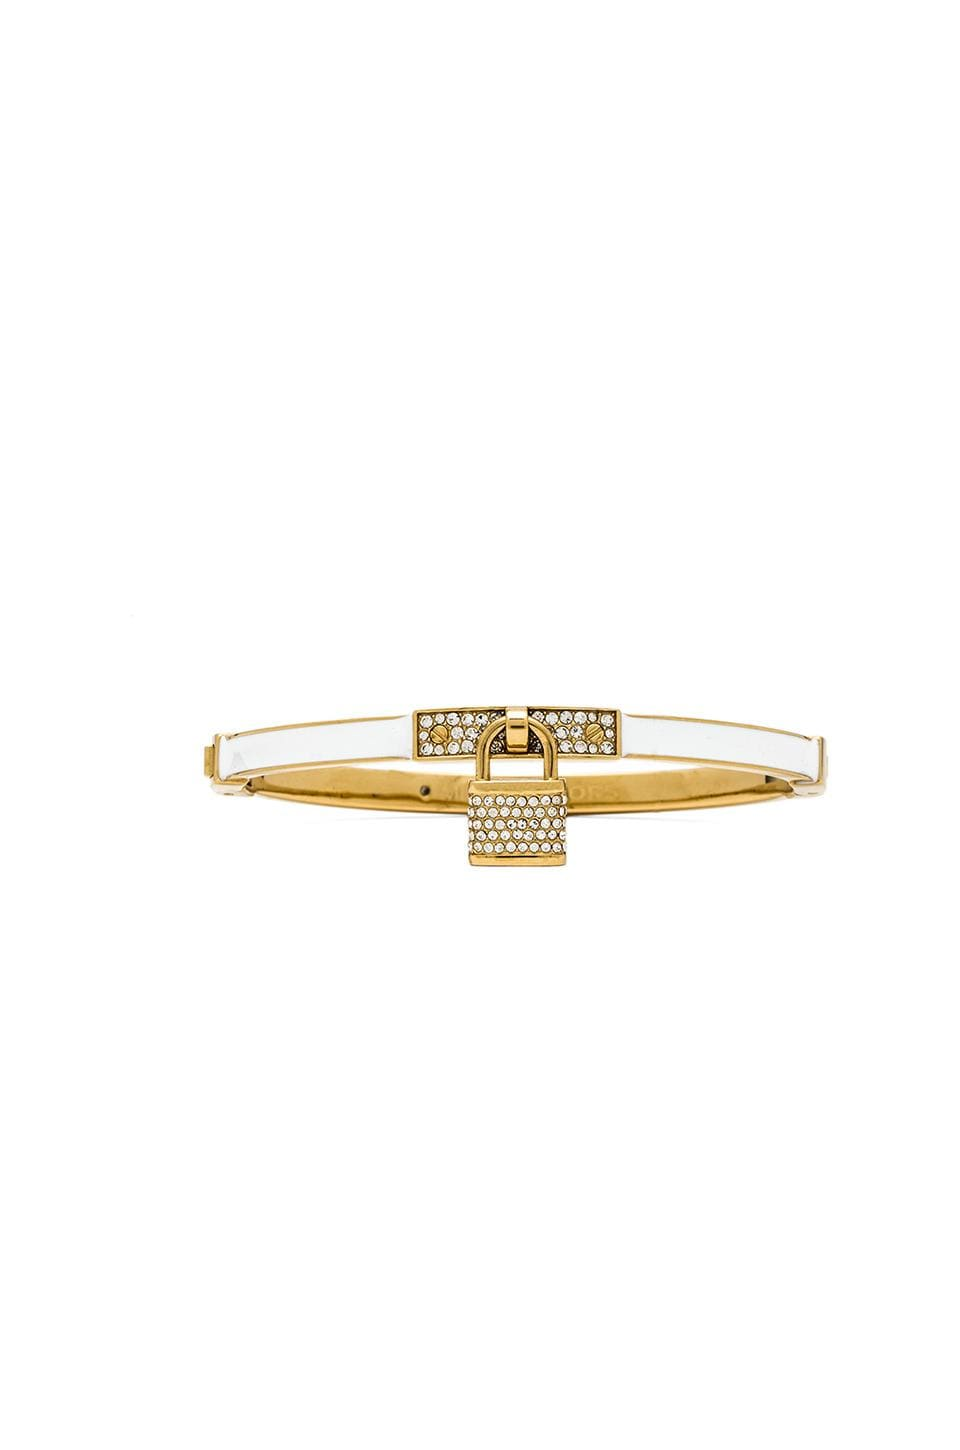 Michael Kors Padlock Bracelet in Gold